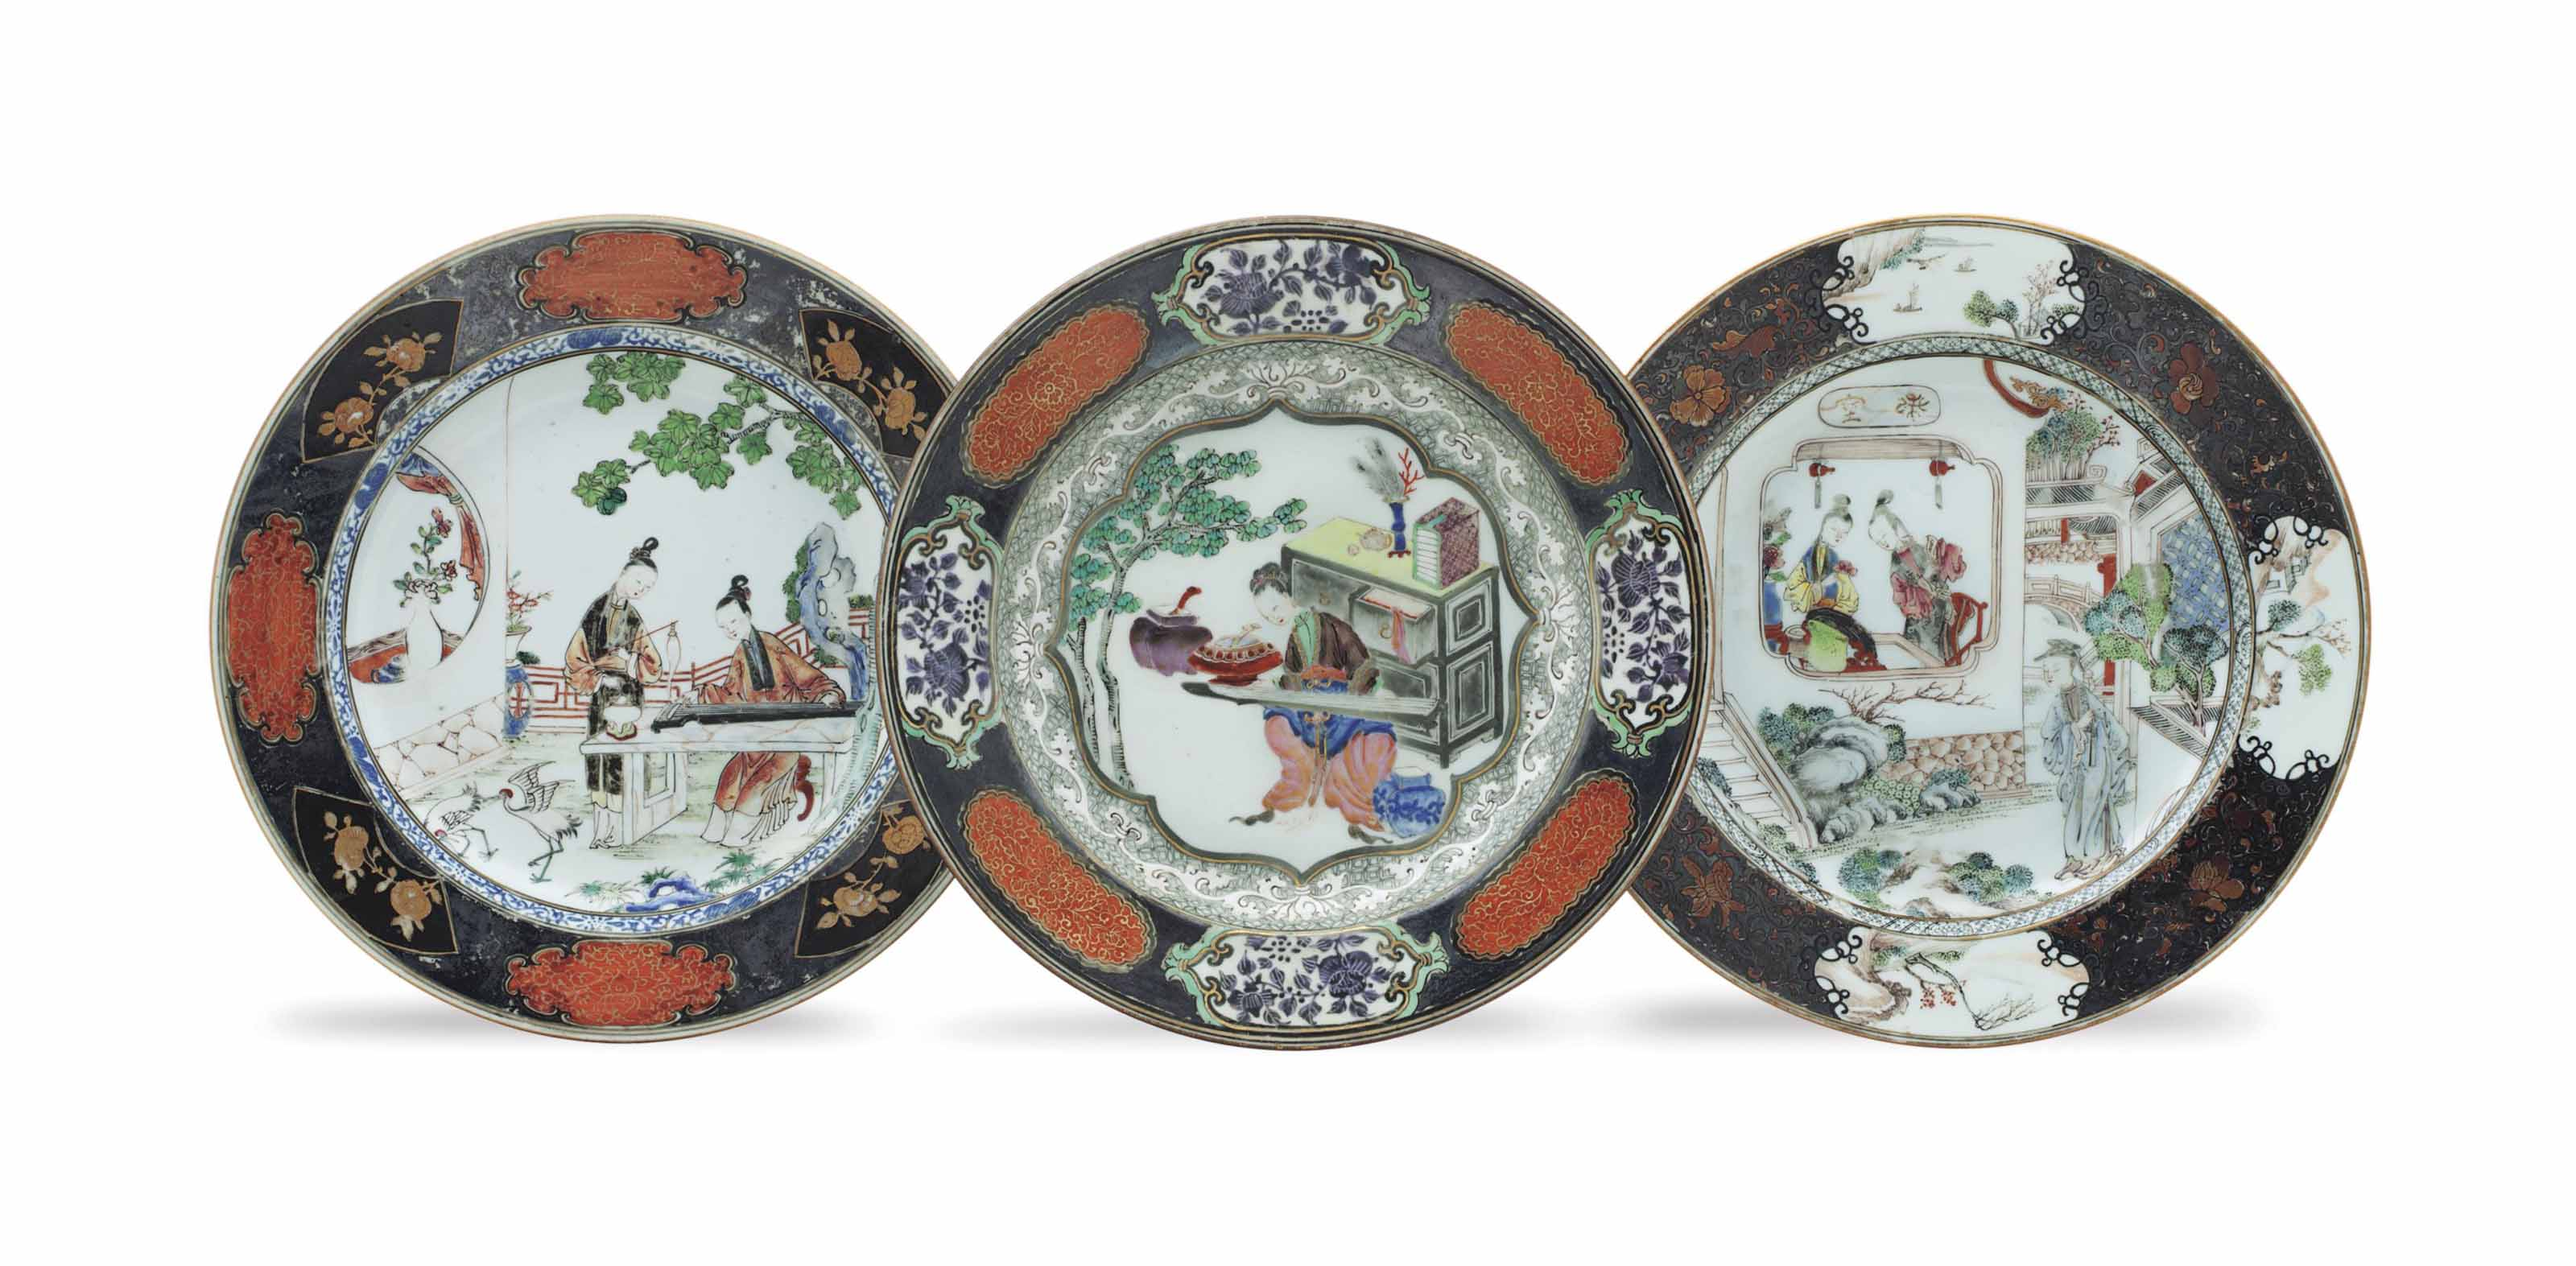 THREE SILVERED AND GILT FAMILLE ROSE PLATES